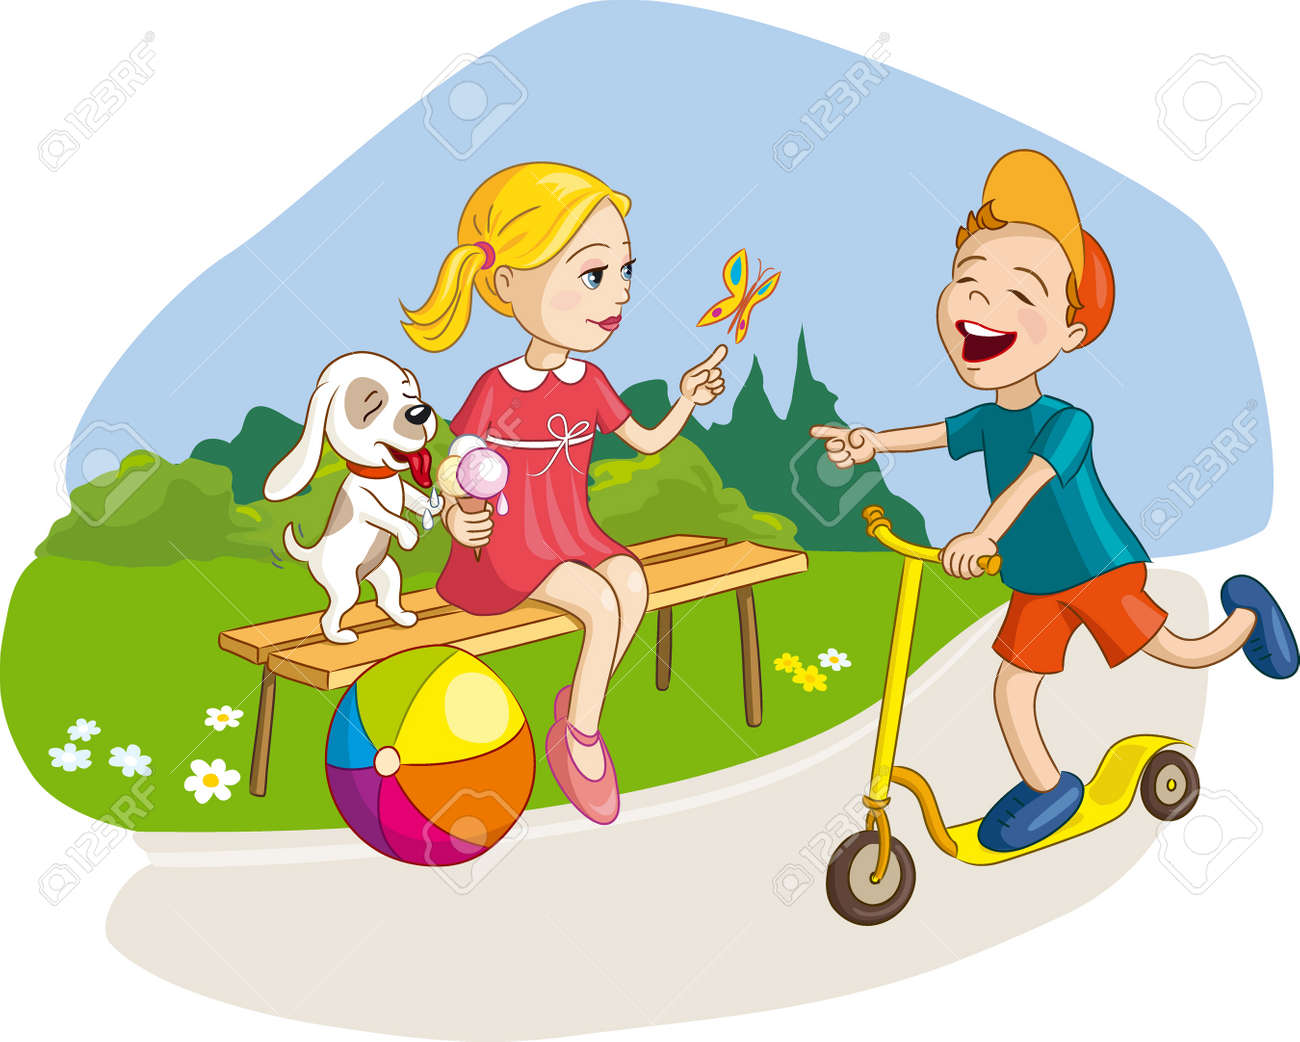 Girl, boy and dog having fun, summer vacation in park with ice-cream and scooter. Vector illustration for kids, children - 60261360